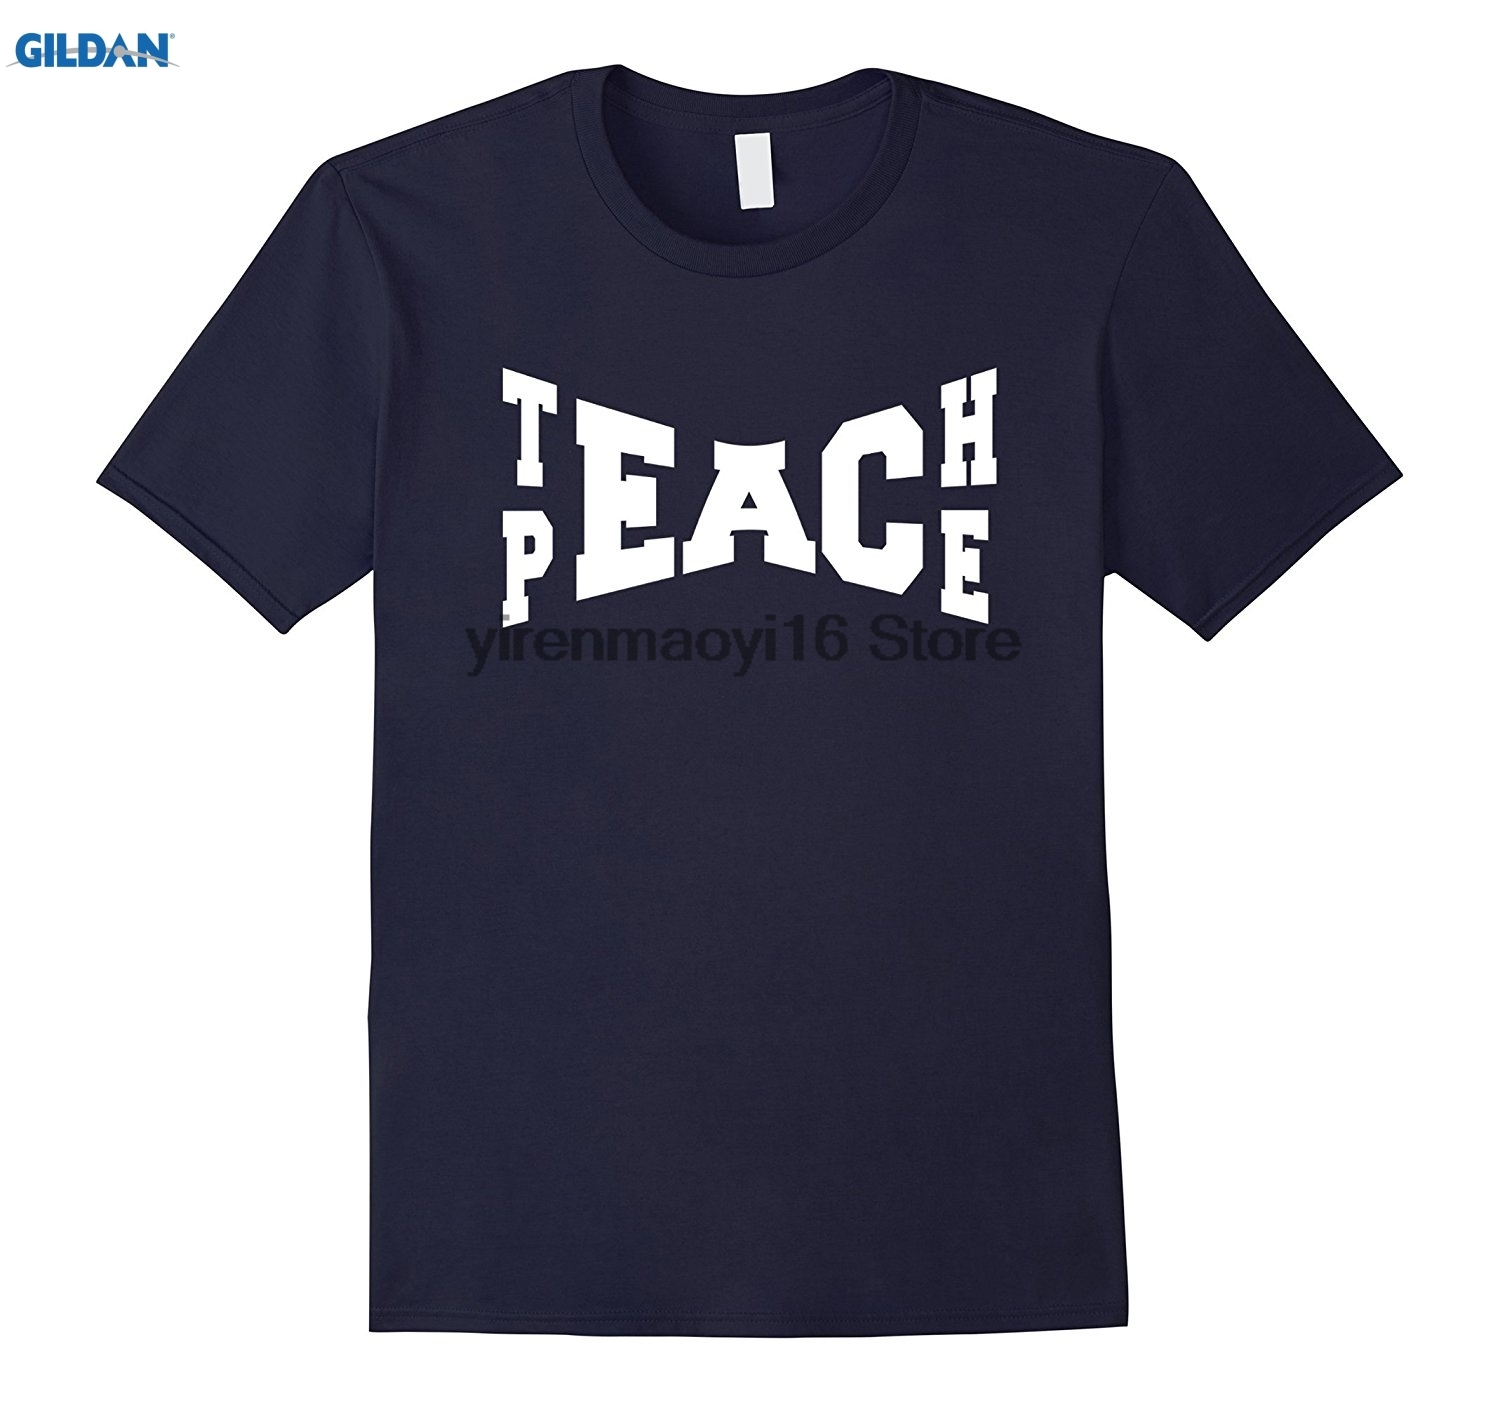 GILDAN 100% cotton O-neck printed T-shirt Teach Peace best one world religion love cool funny t-shirt